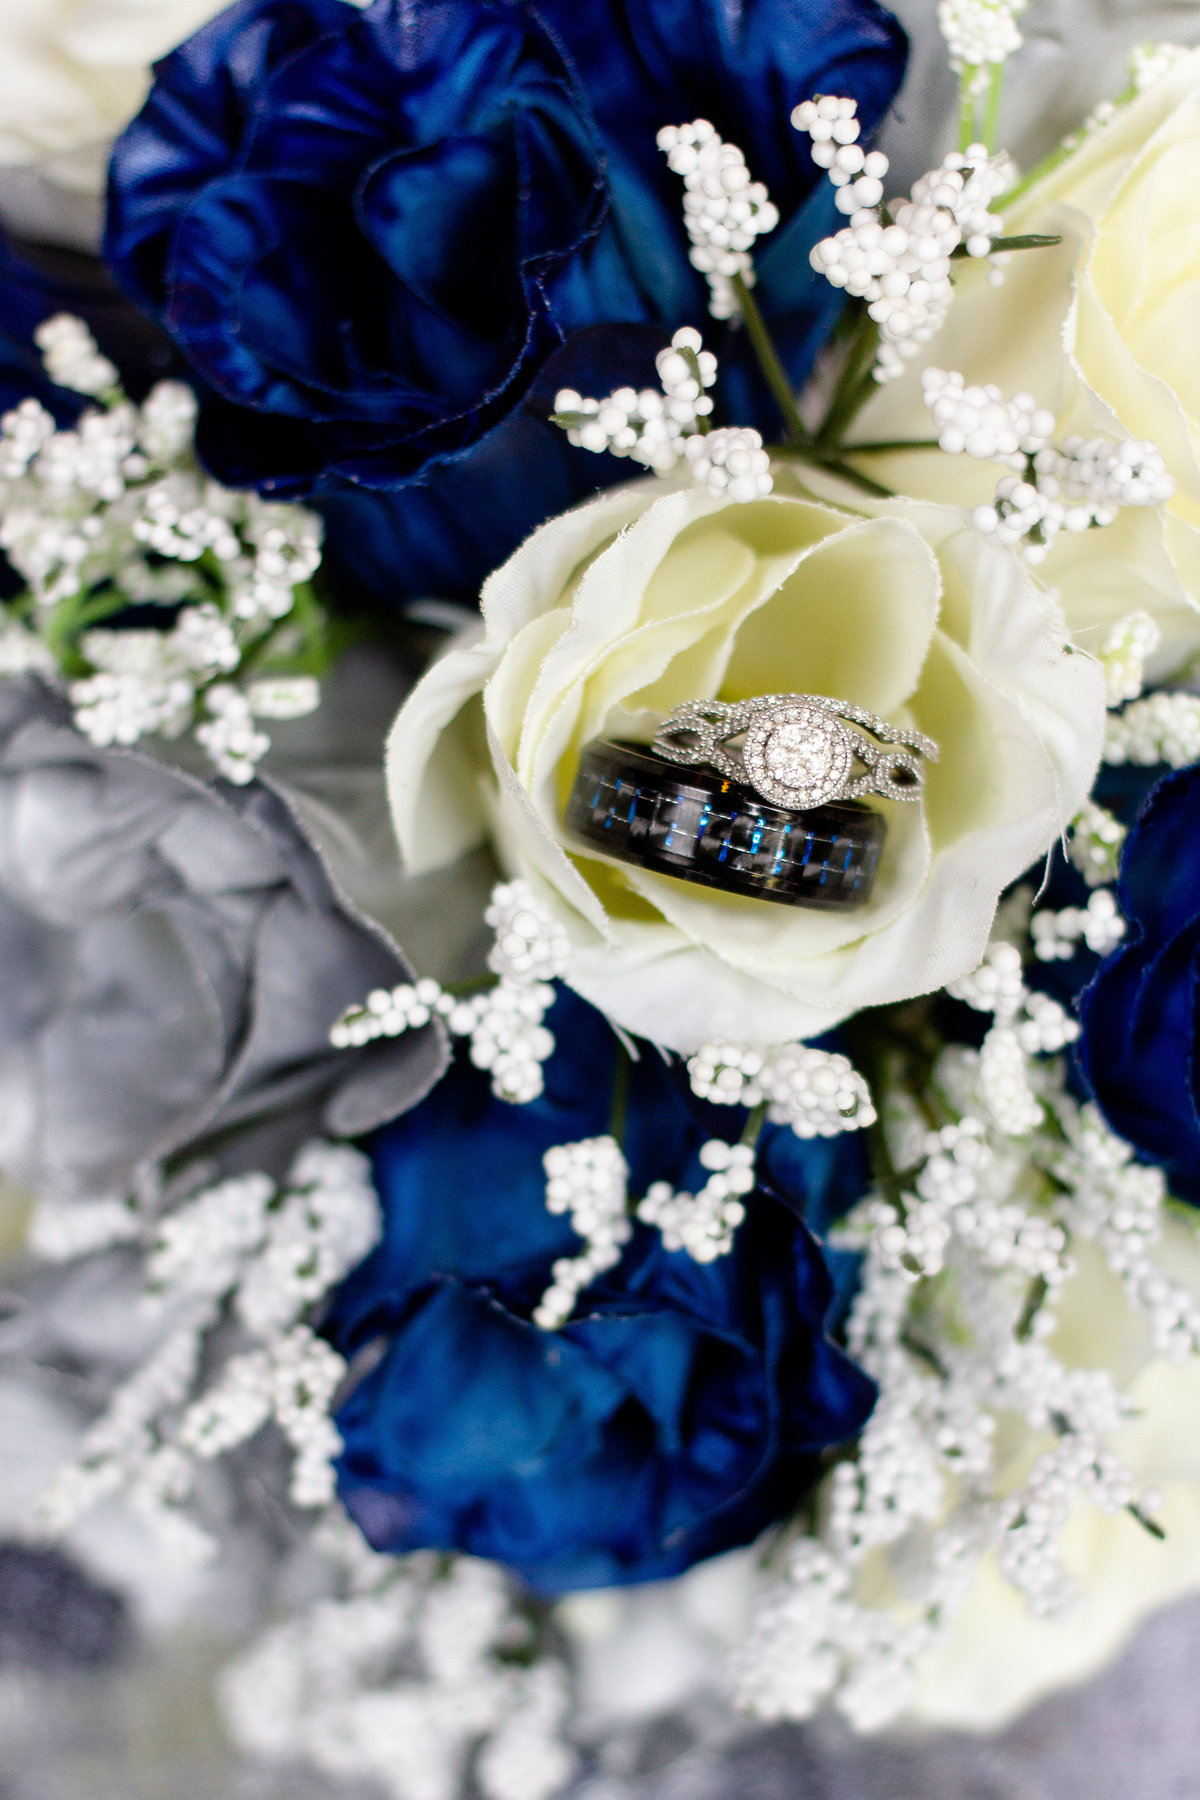 Engagement ring and wedding rings, both bride and groom, focused on in white, blue and silver bridal bouquet in Lakeland, Florida